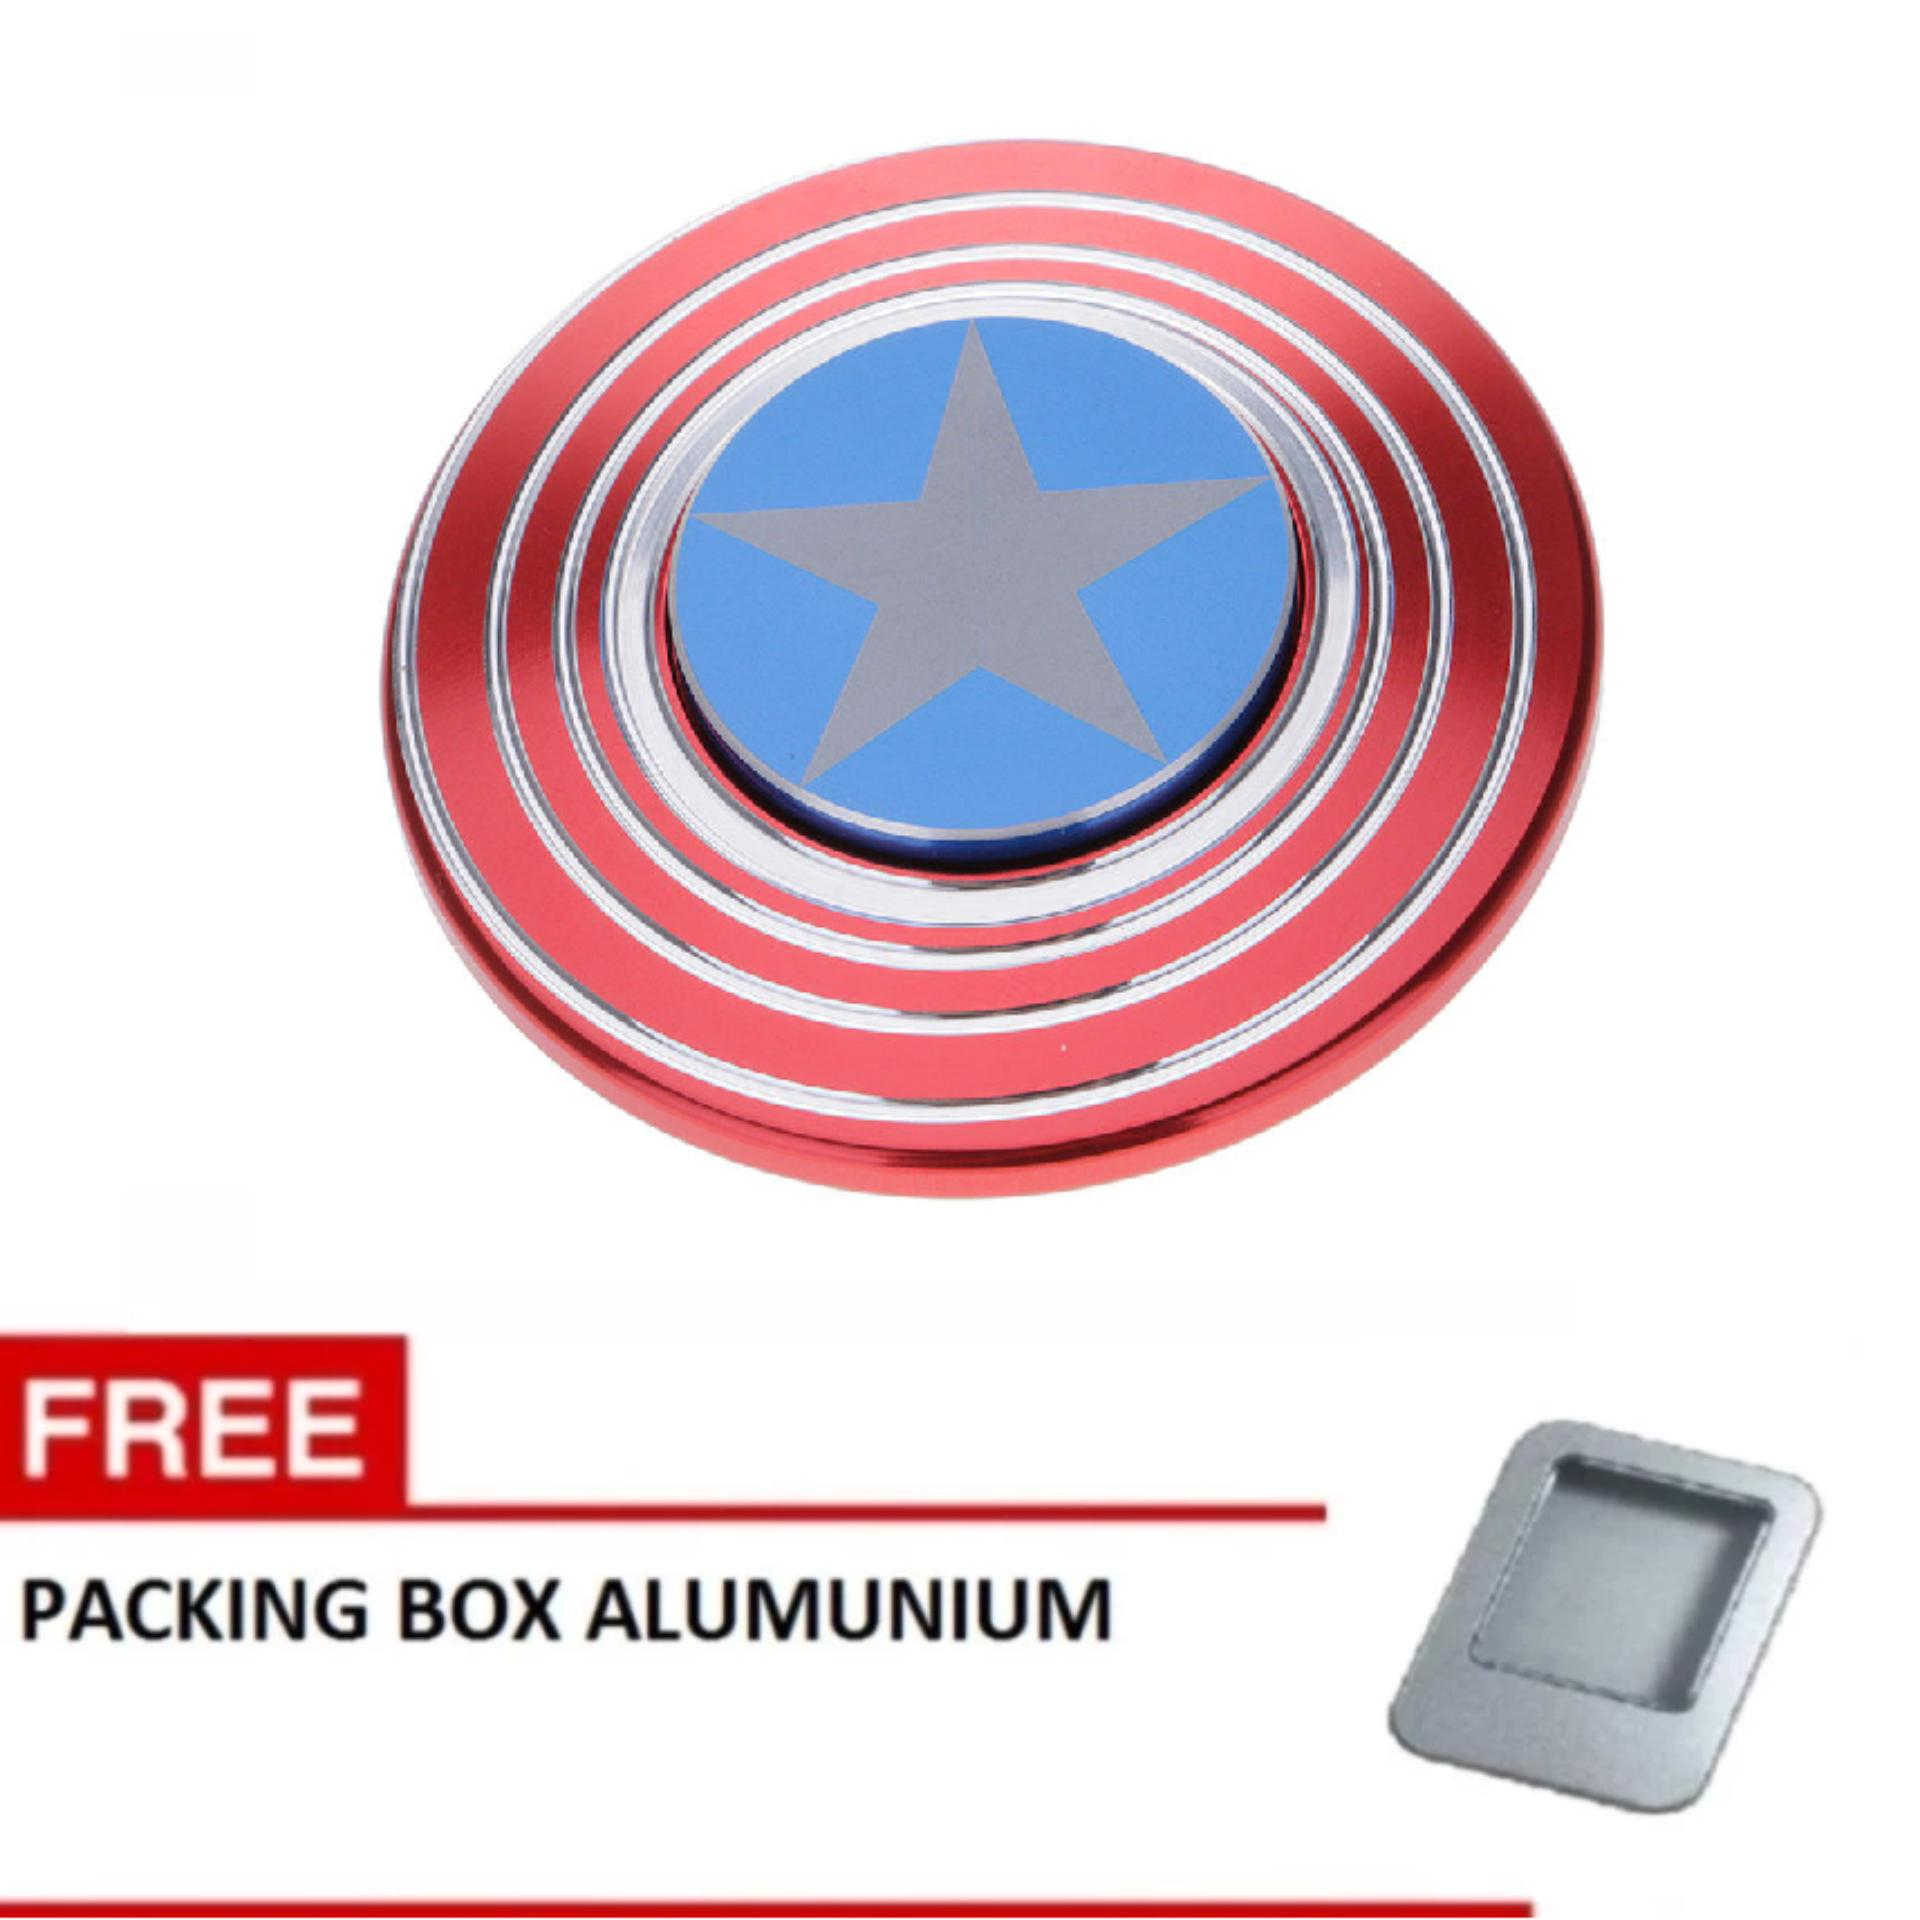 ... Techland Alumunium Alloy Full Bearing. Source · ANGEL - Fidget Spinner Aluminium Premium Captain America Focus Hand Toys Mainan Spinner EDC Aluminium